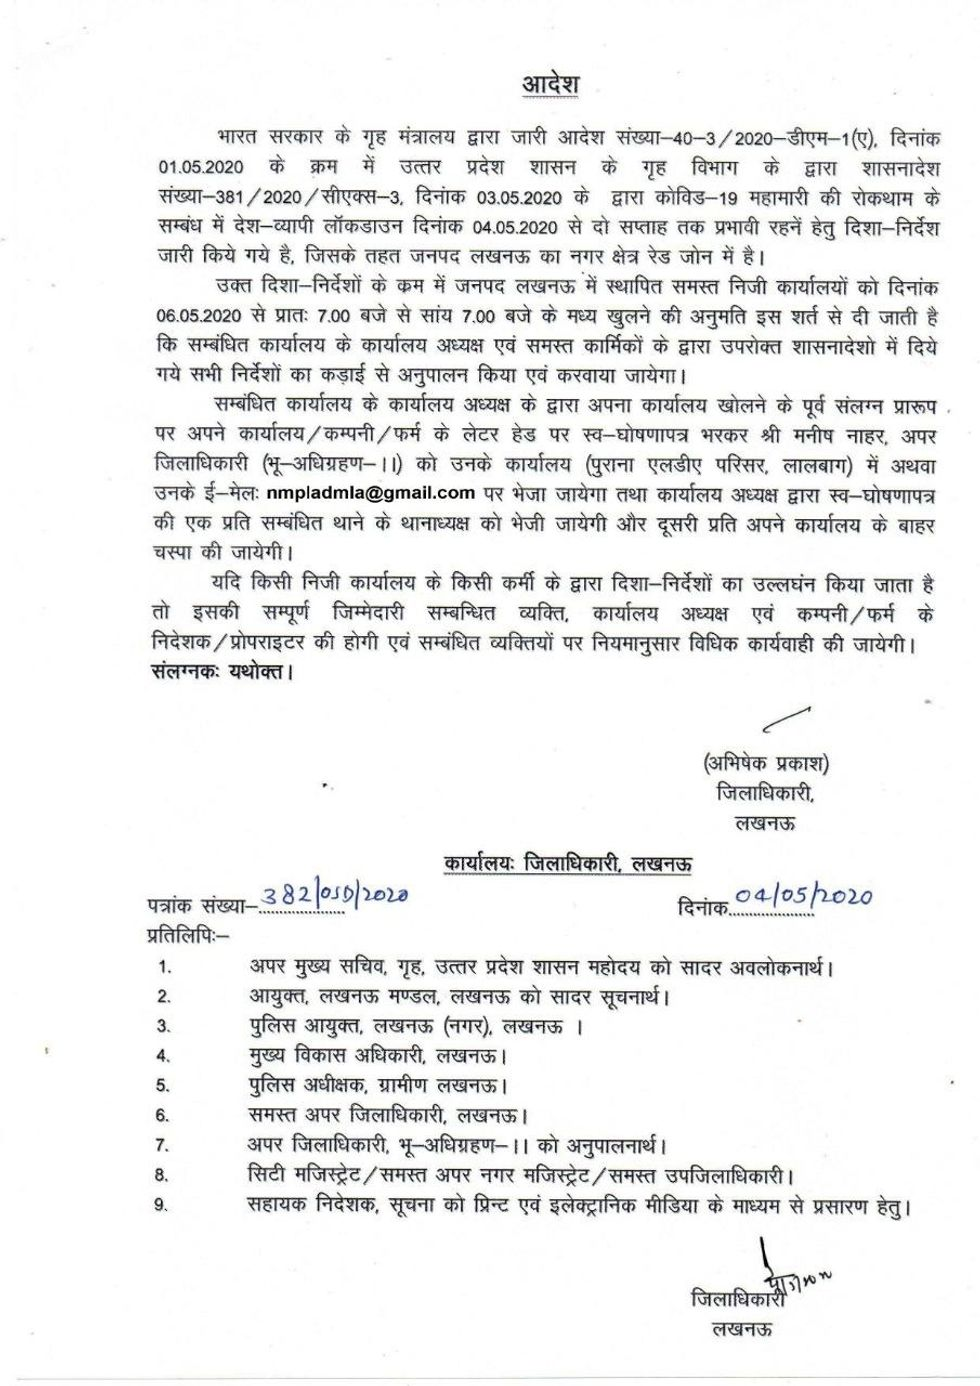 Private Offices In Lucknow Get Permission To Operate Here S A